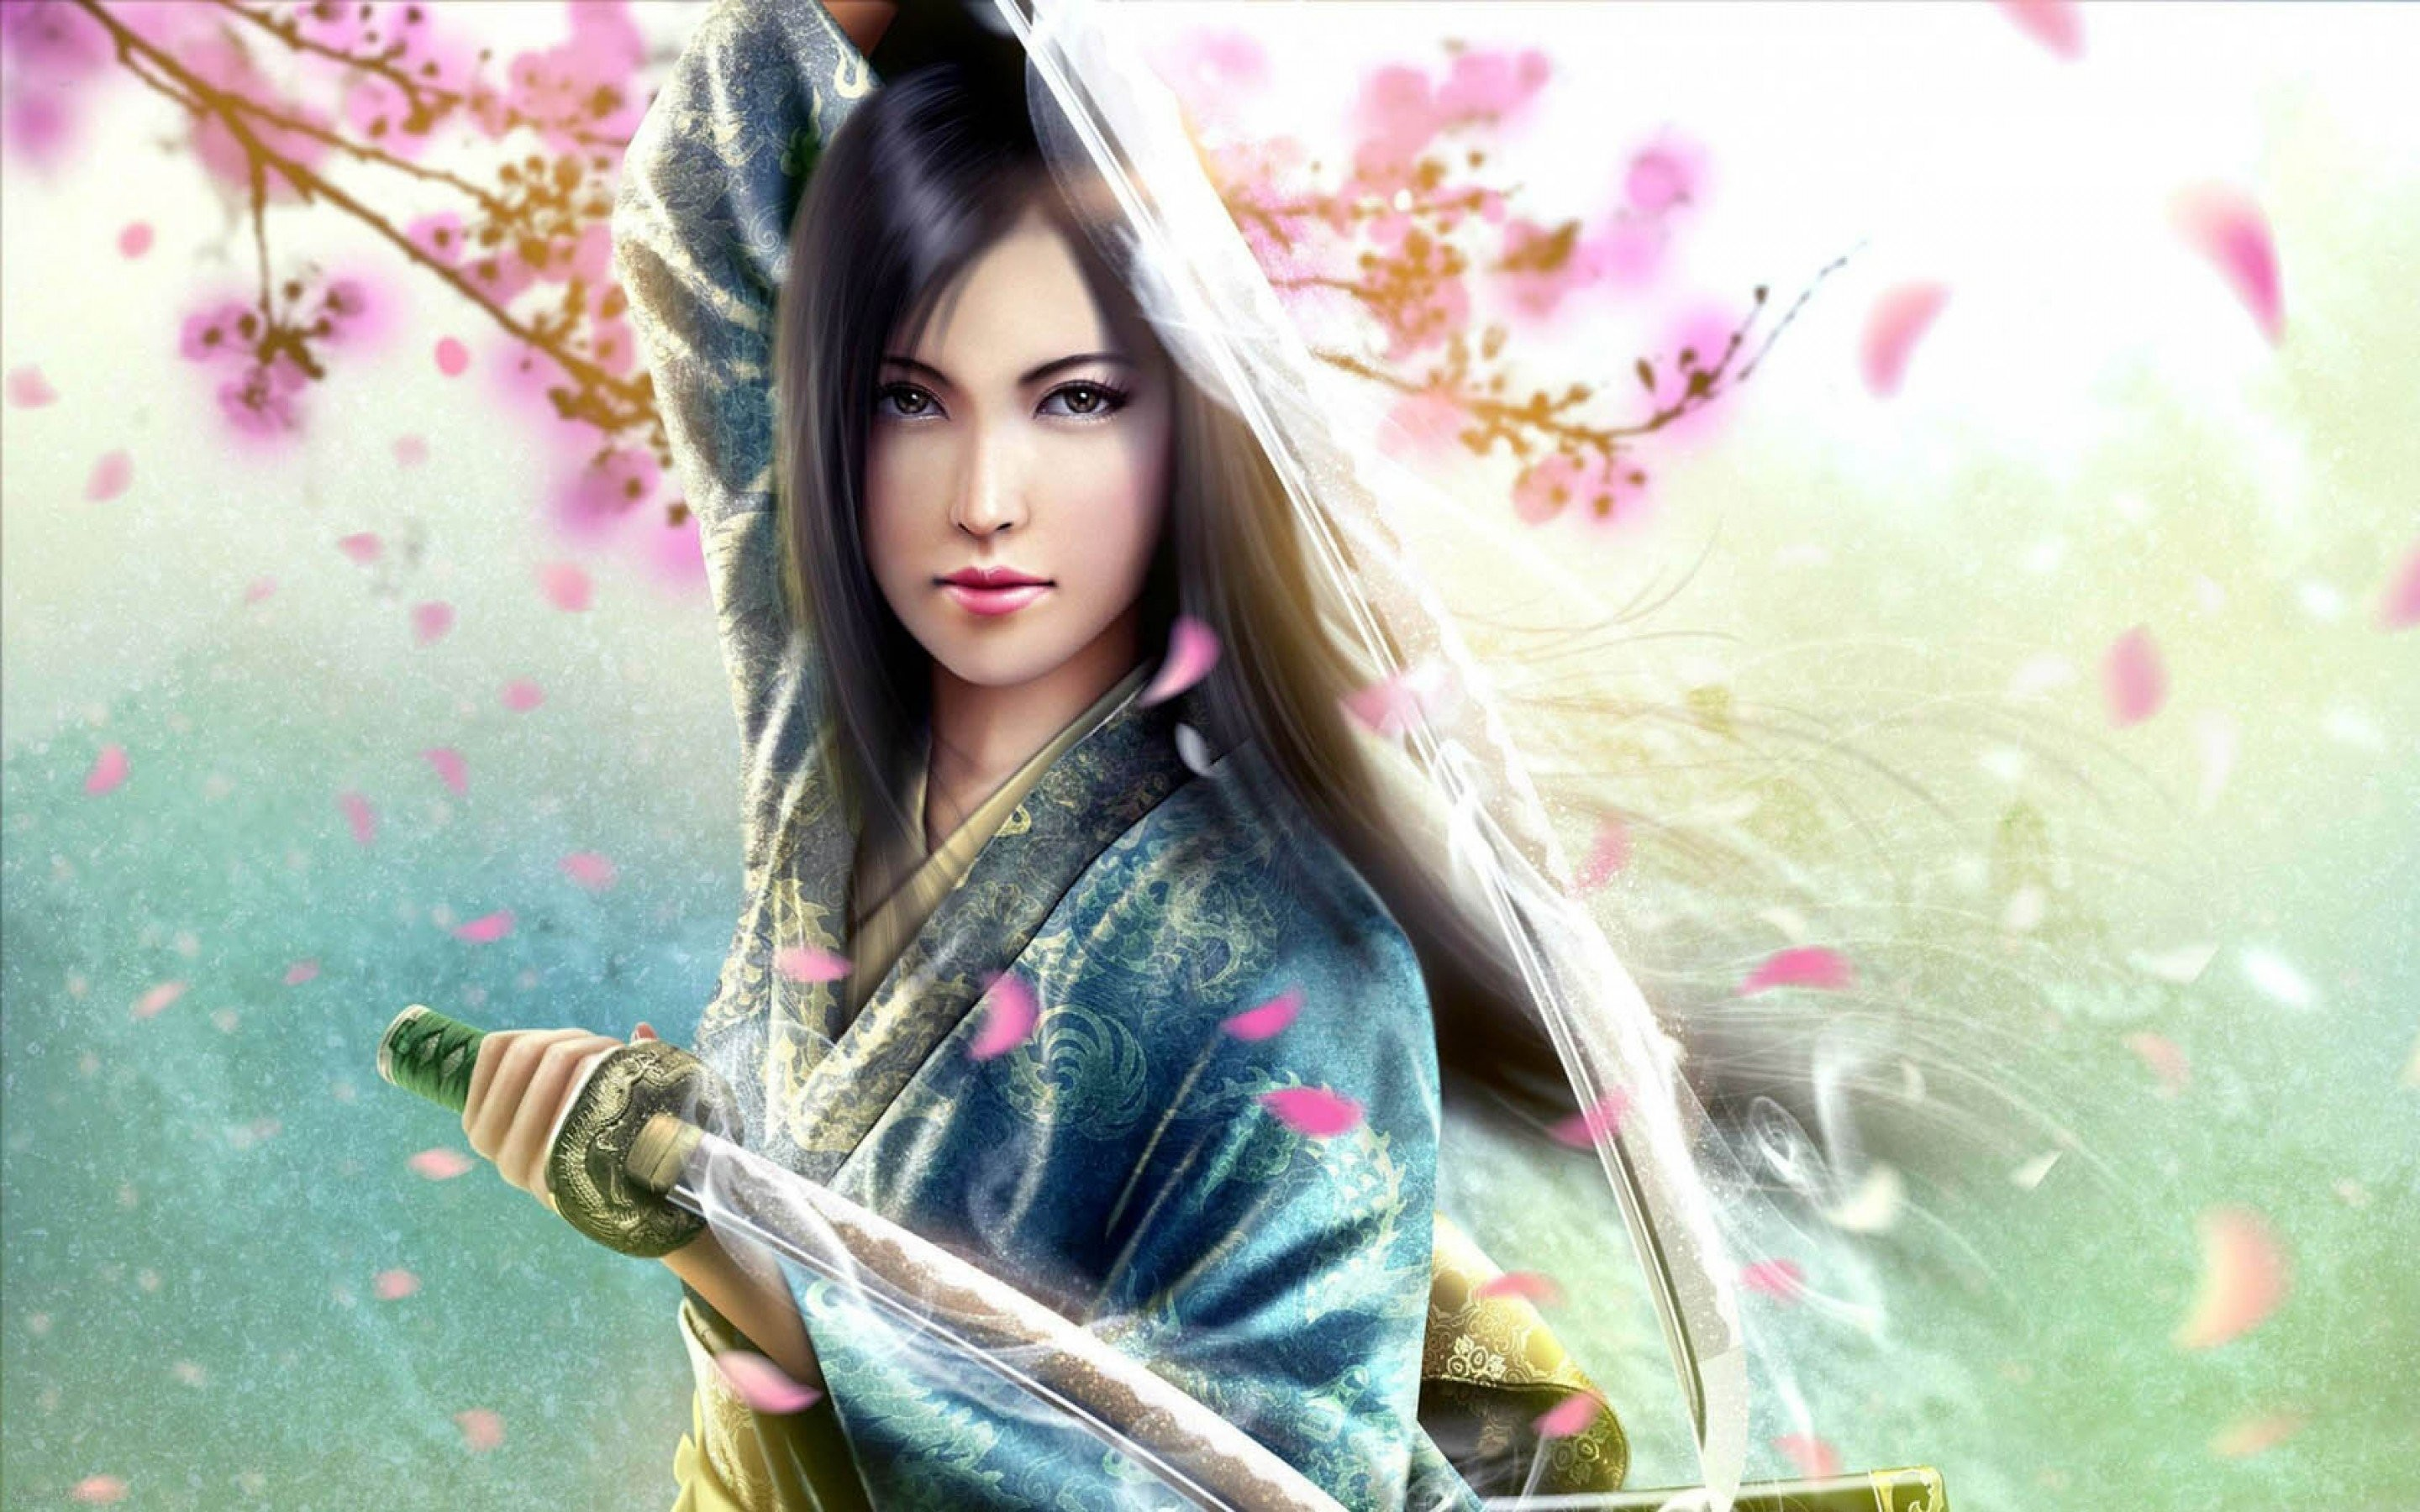 2880x1800 Best wallpaper gallery with Samurai Girl Female Warrior and HD wallpapers.  We collected full High Quality pictures and wallpapers for your PC, ...